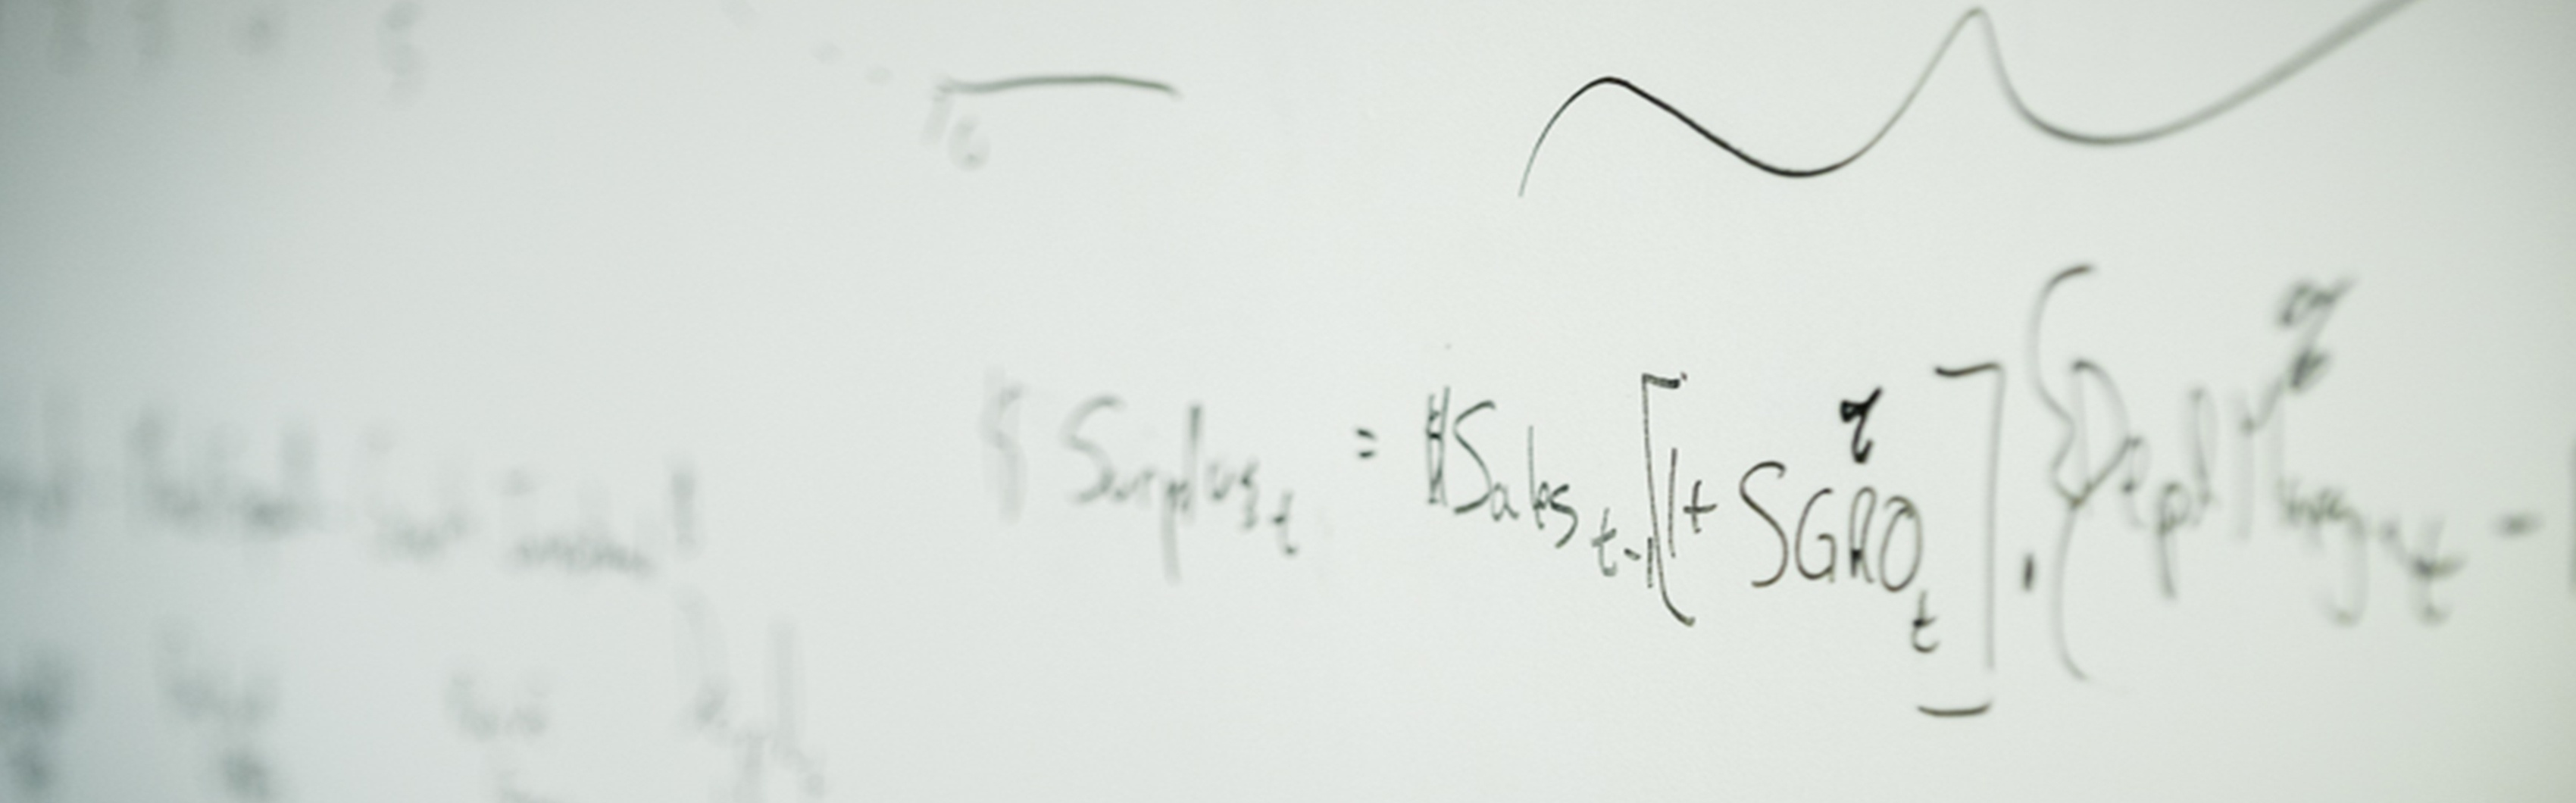 Formula on white board